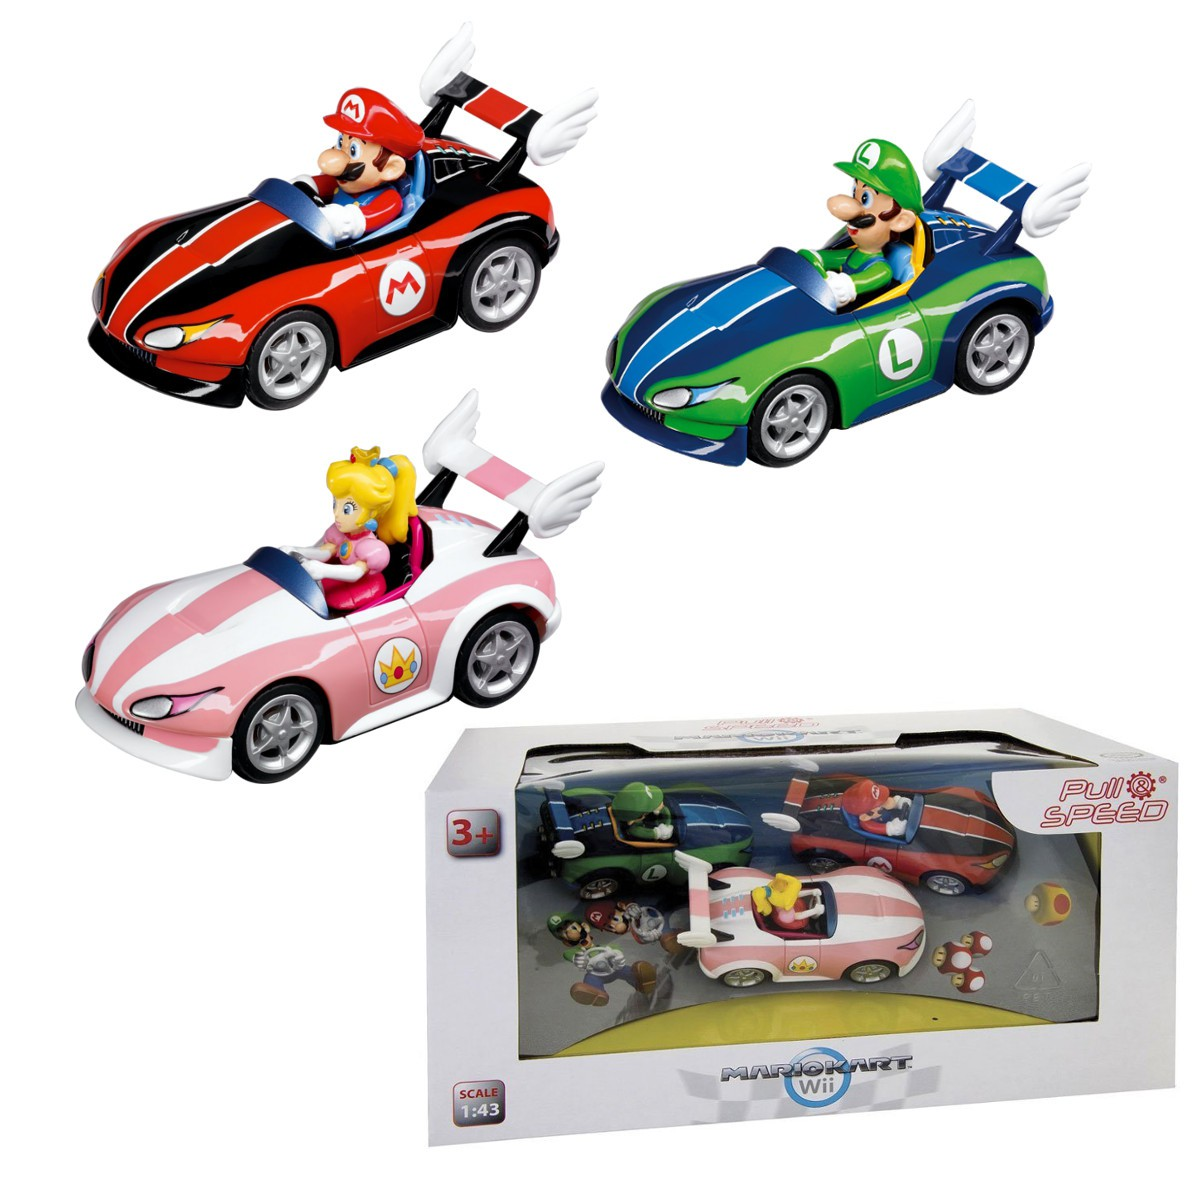 set 3 model car mario kart 1 43 original luigi peach. Black Bedroom Furniture Sets. Home Design Ideas